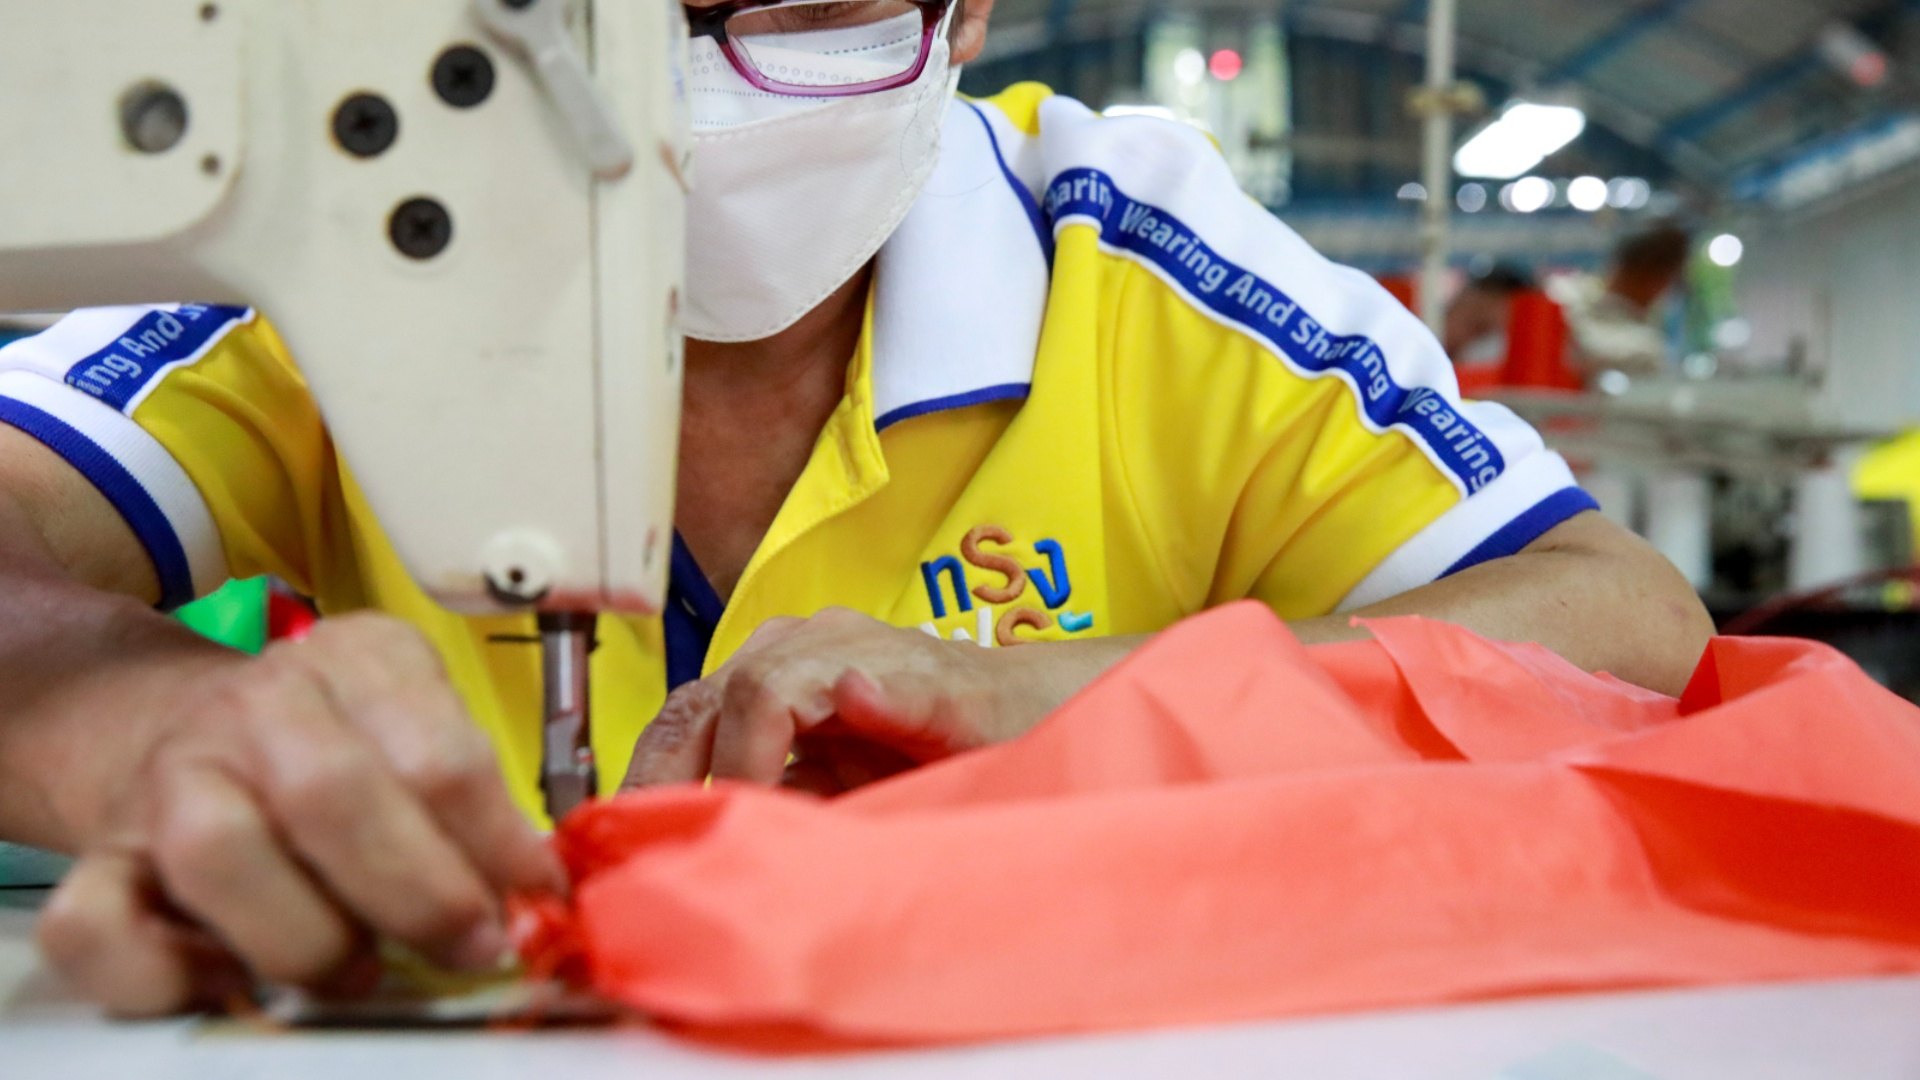 Turning plastic bottles into protective clothing against Covid-19 - Photo 2